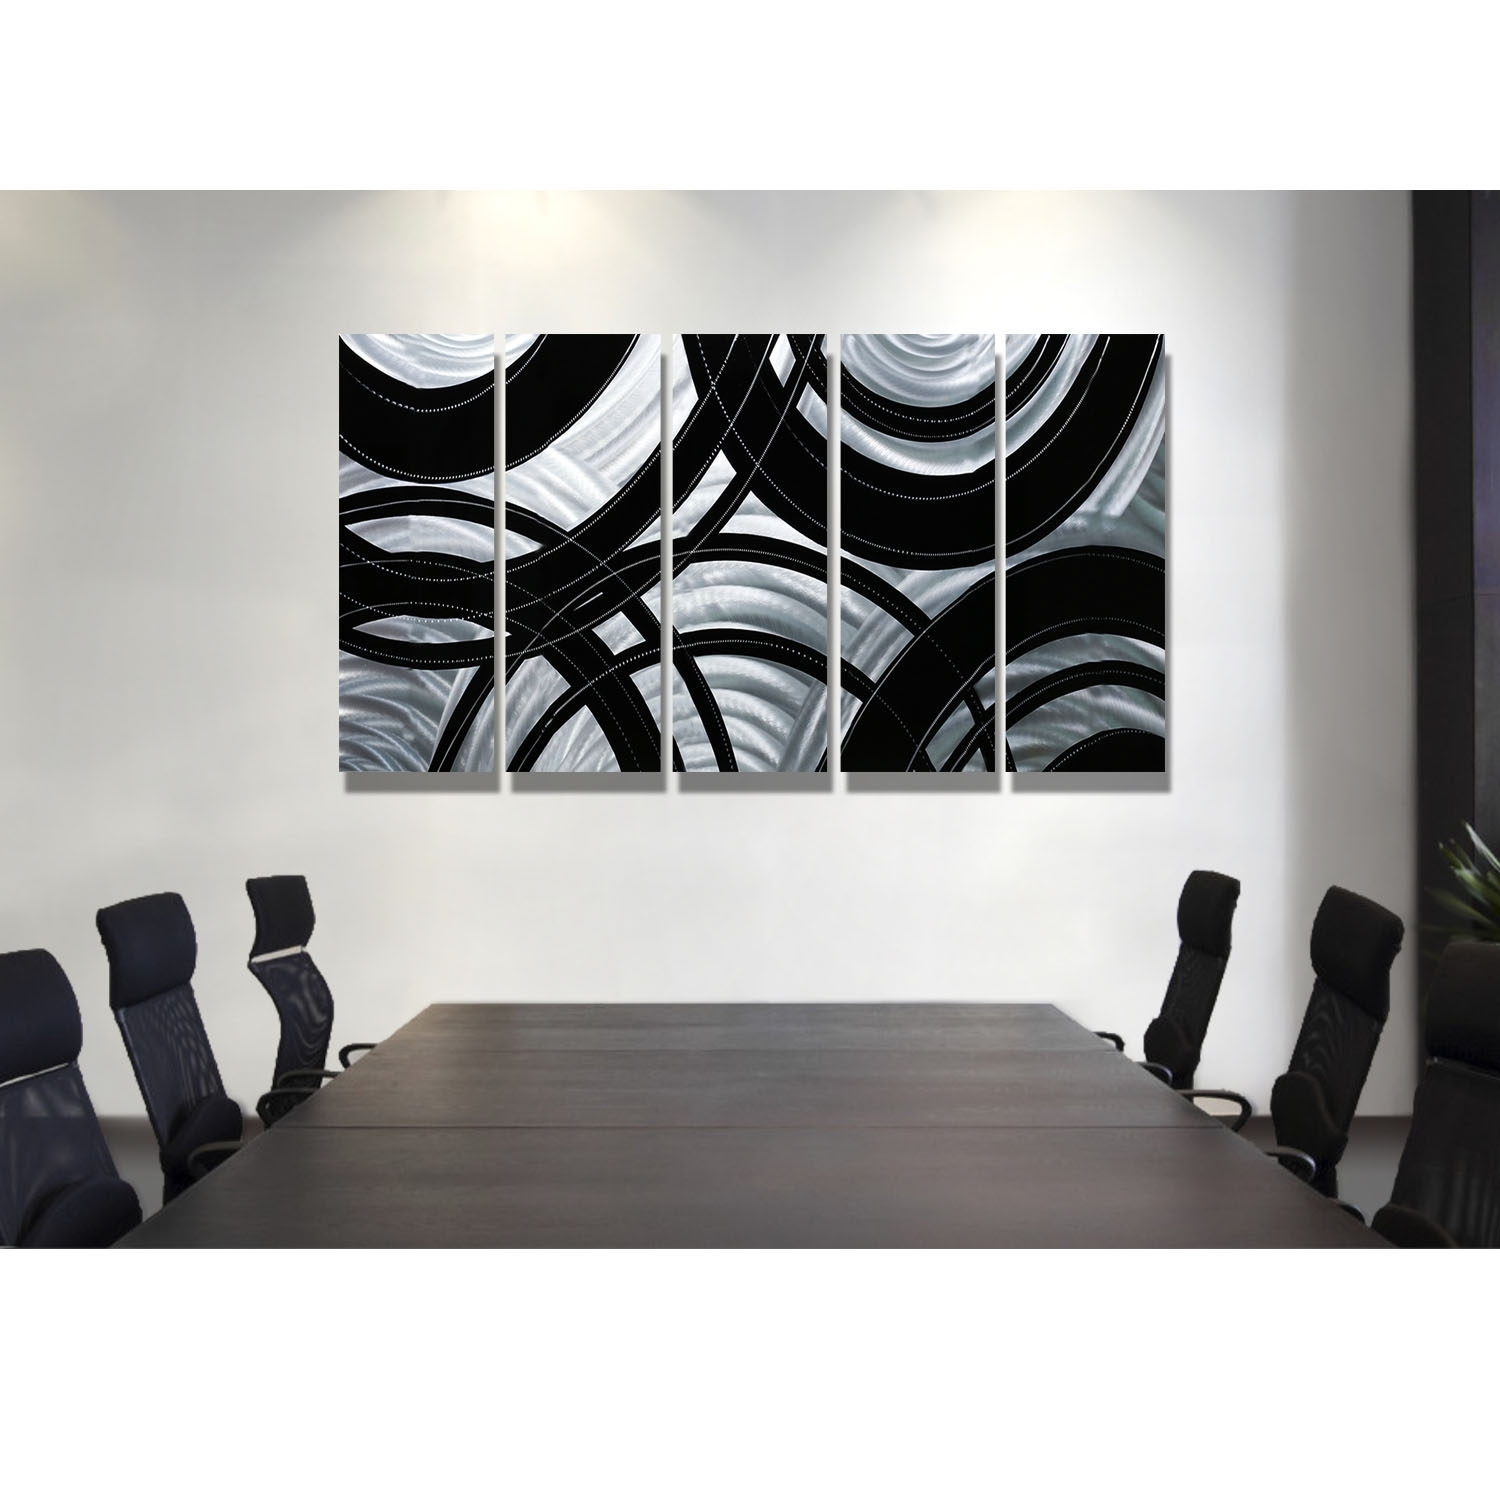 Synergy – Black And Silver Metal Wall Art – 5 Panel Wall Décor Within Current Silver Wall Art (View 19 of 20)